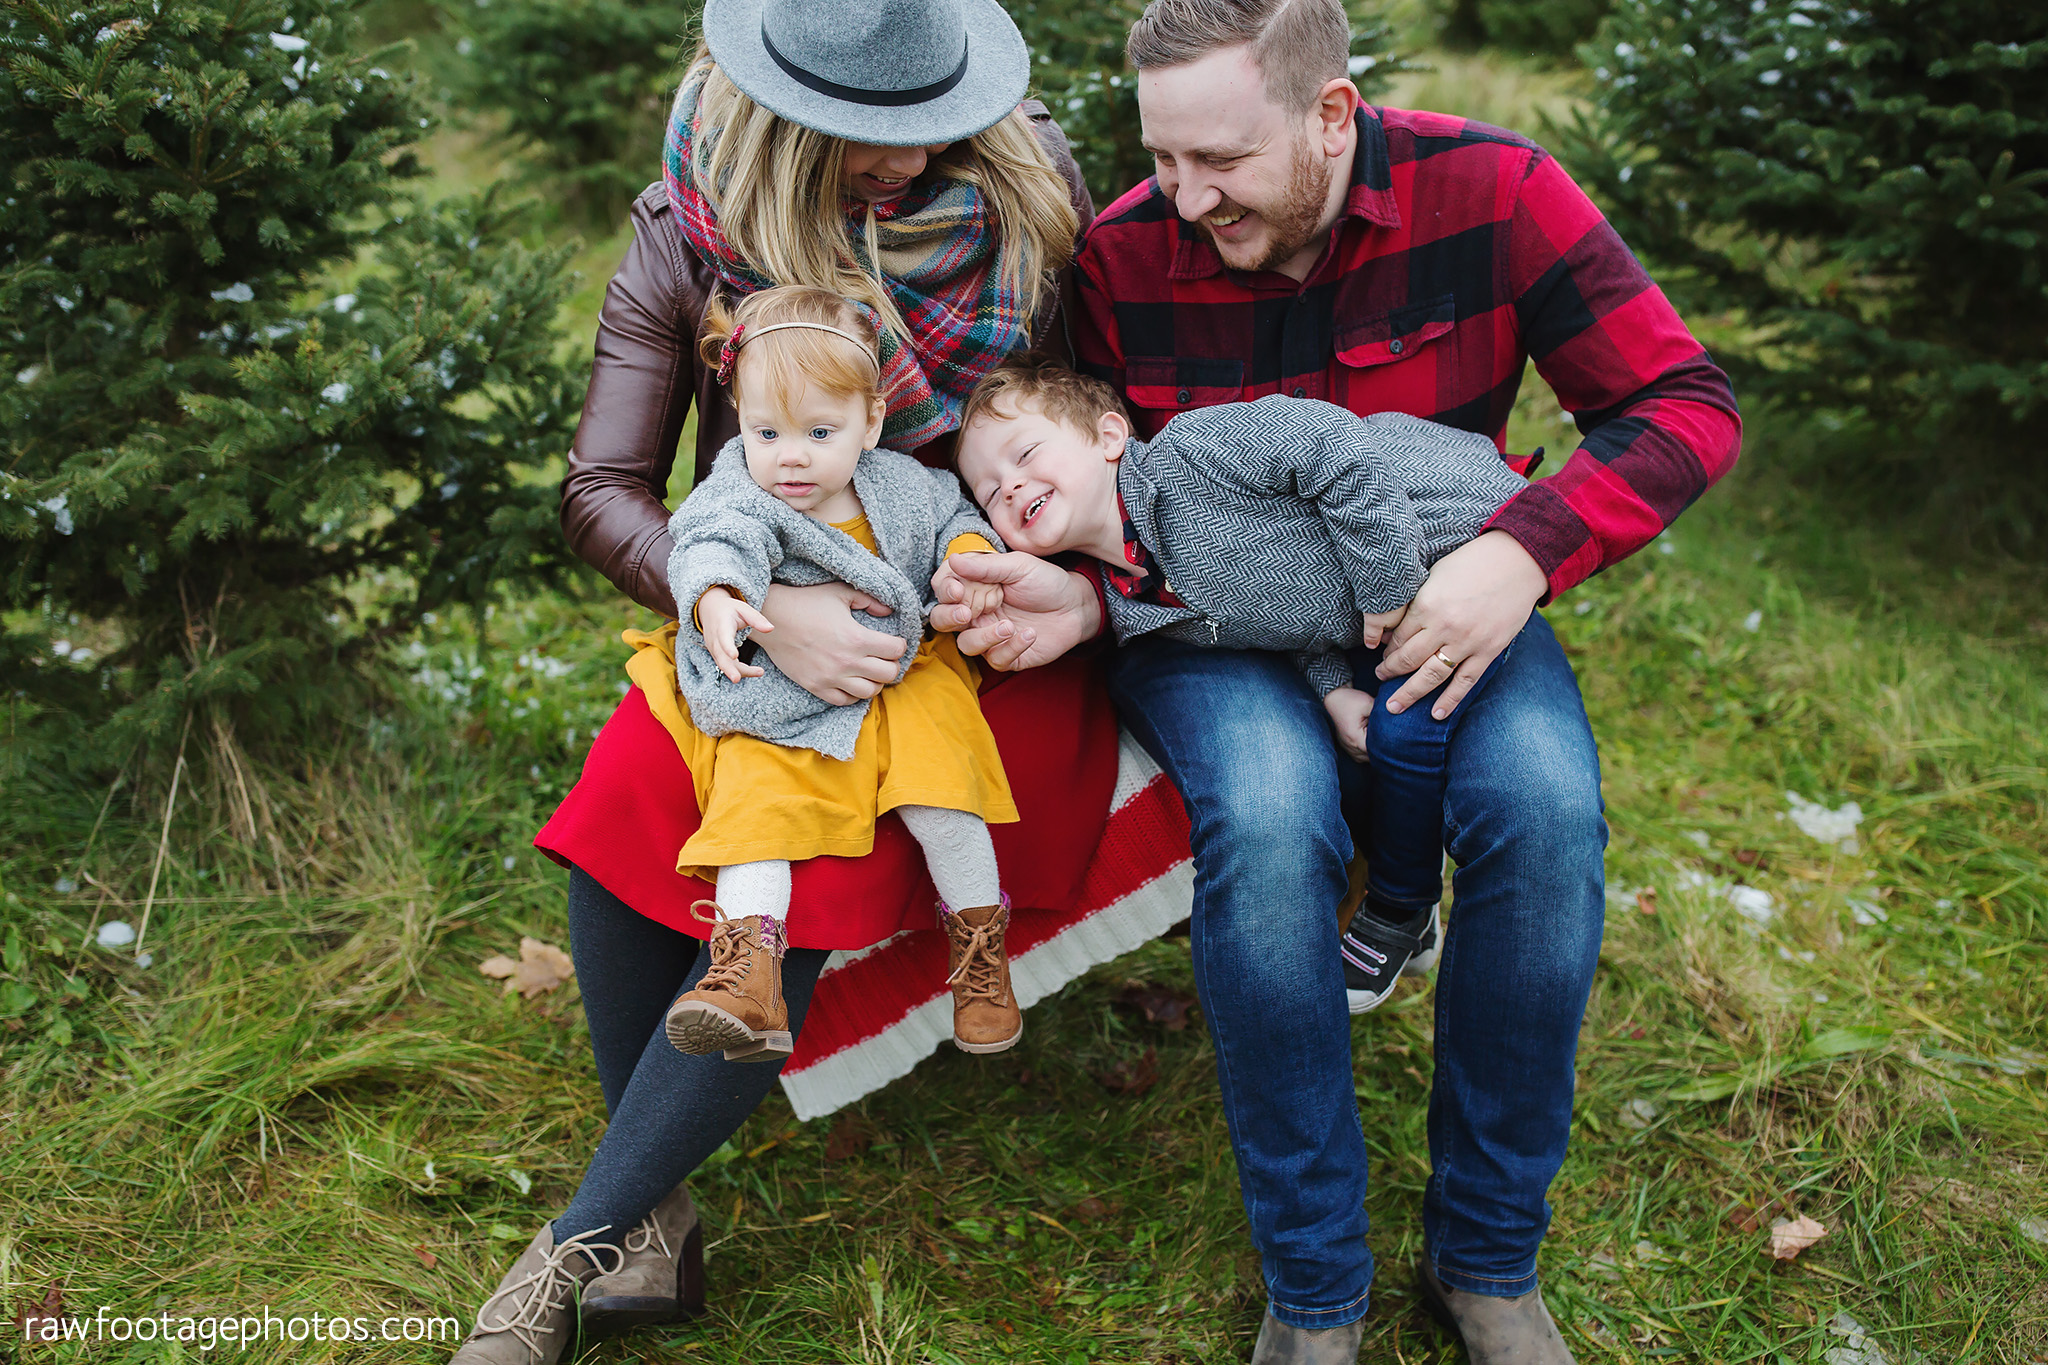 london_ontario_family_photographer-raw_footage_photography-tree_farm_minis-christmas_sessions-winter0042.jpg